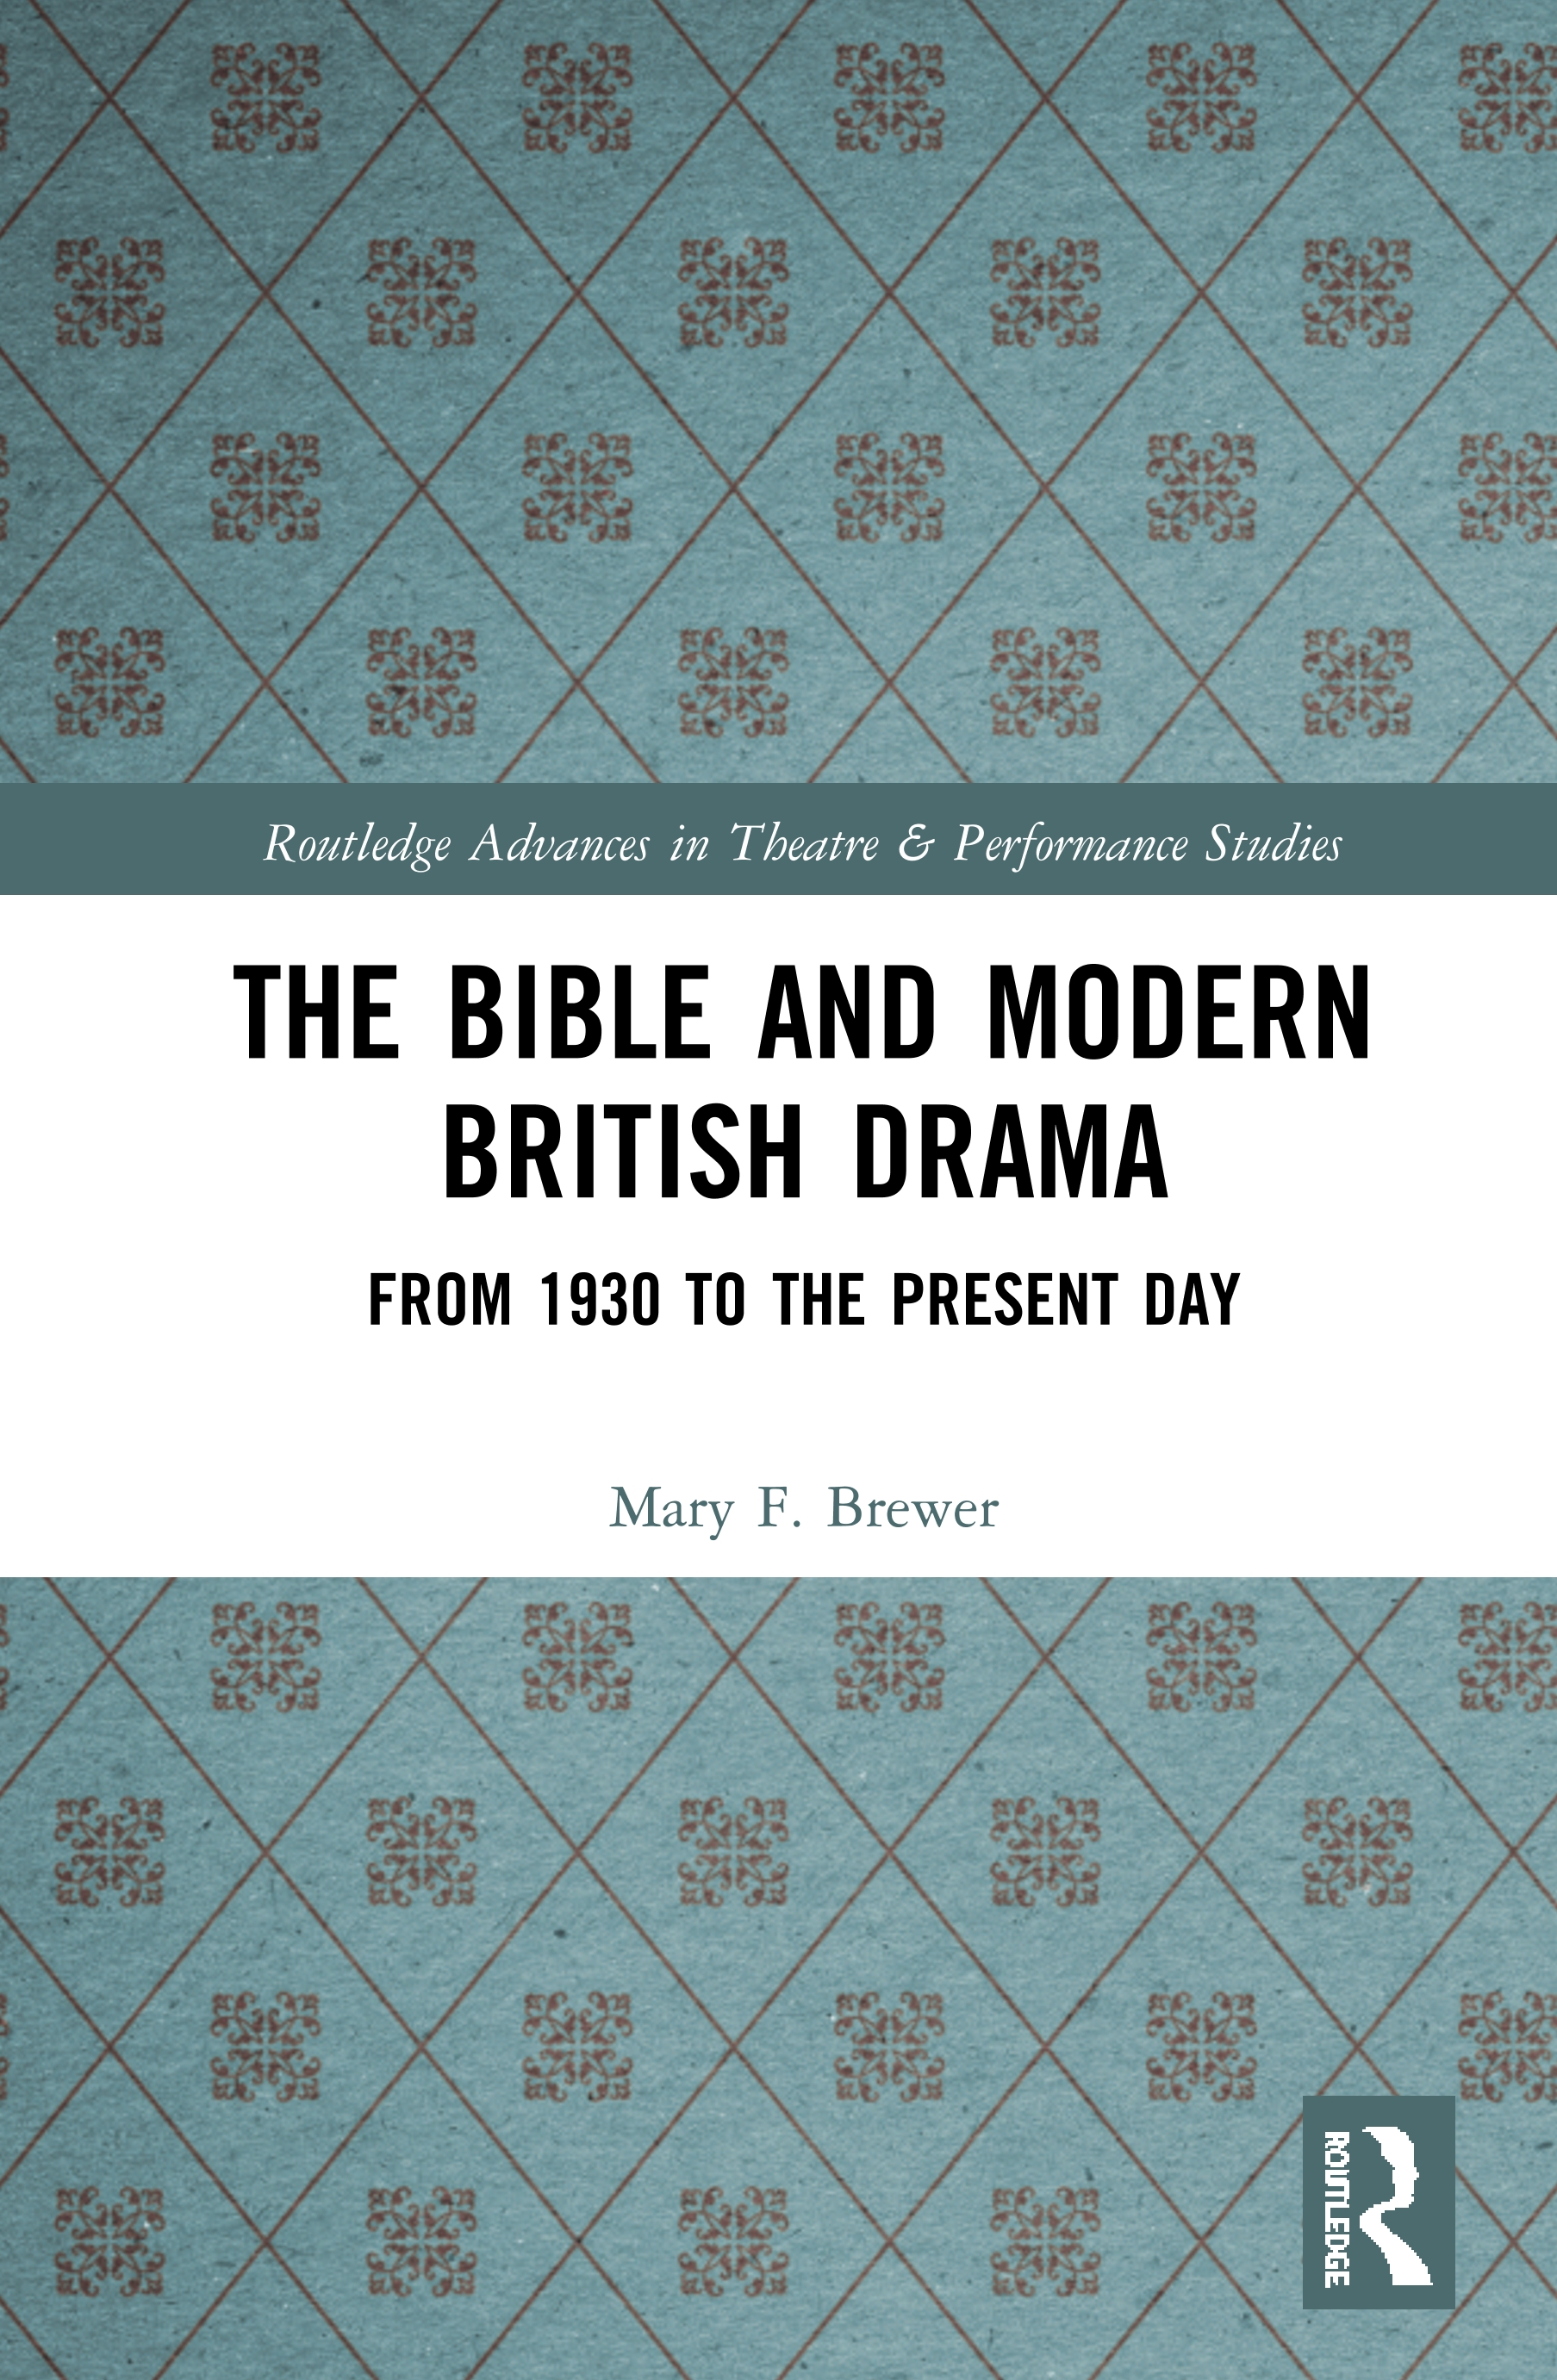 The Bible and Modern British Drama: From 1930 to the Present-Day book cover